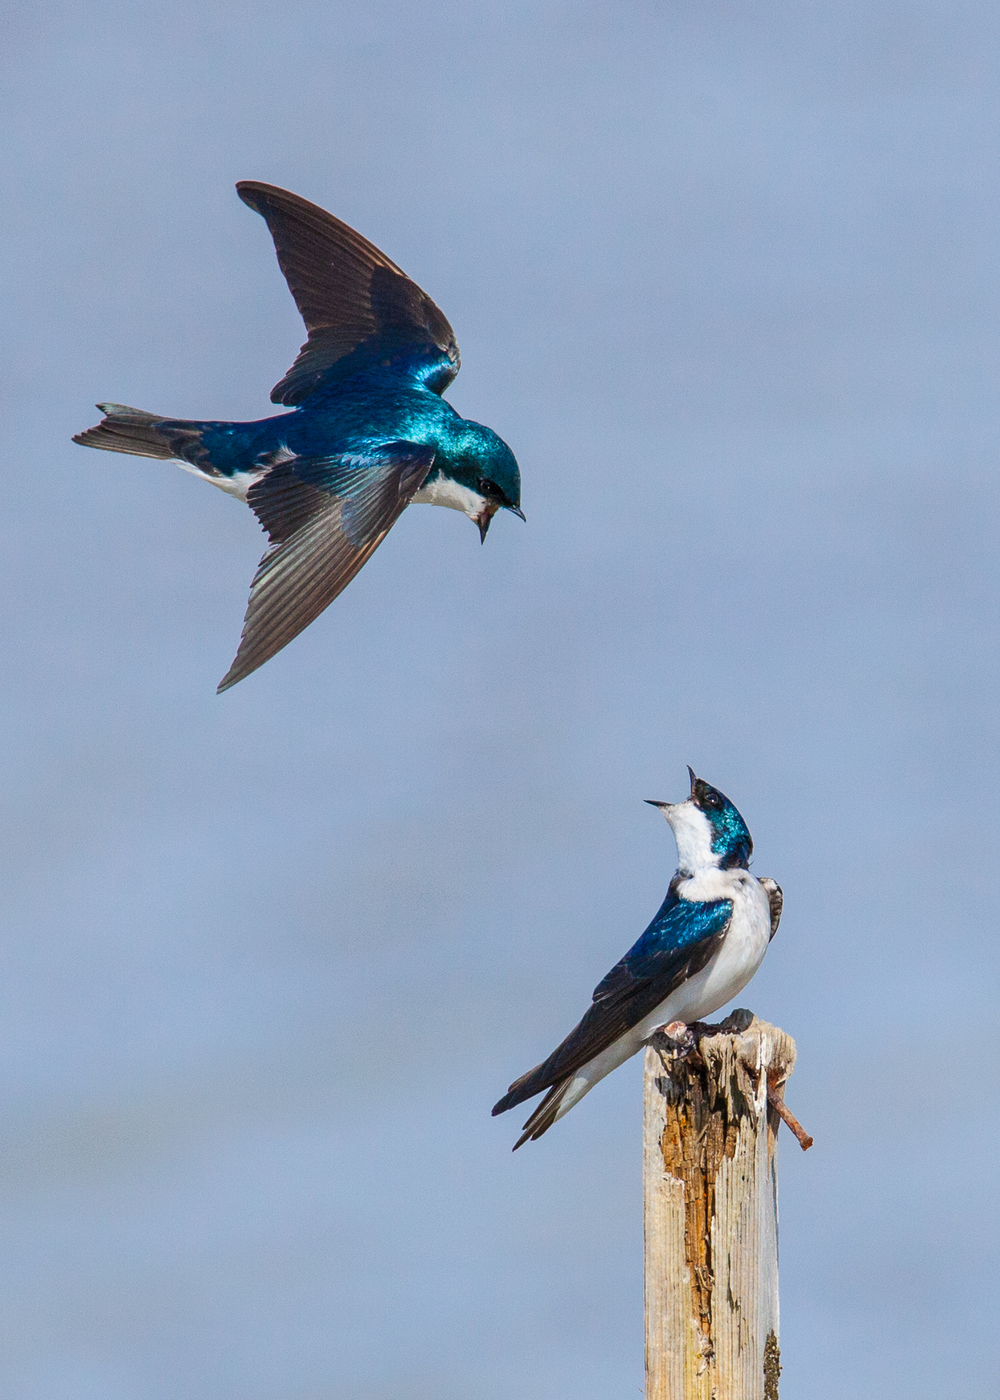 The highlight of the day was a couple of male tree swallows, fighting for turf. I think these turned out really well.